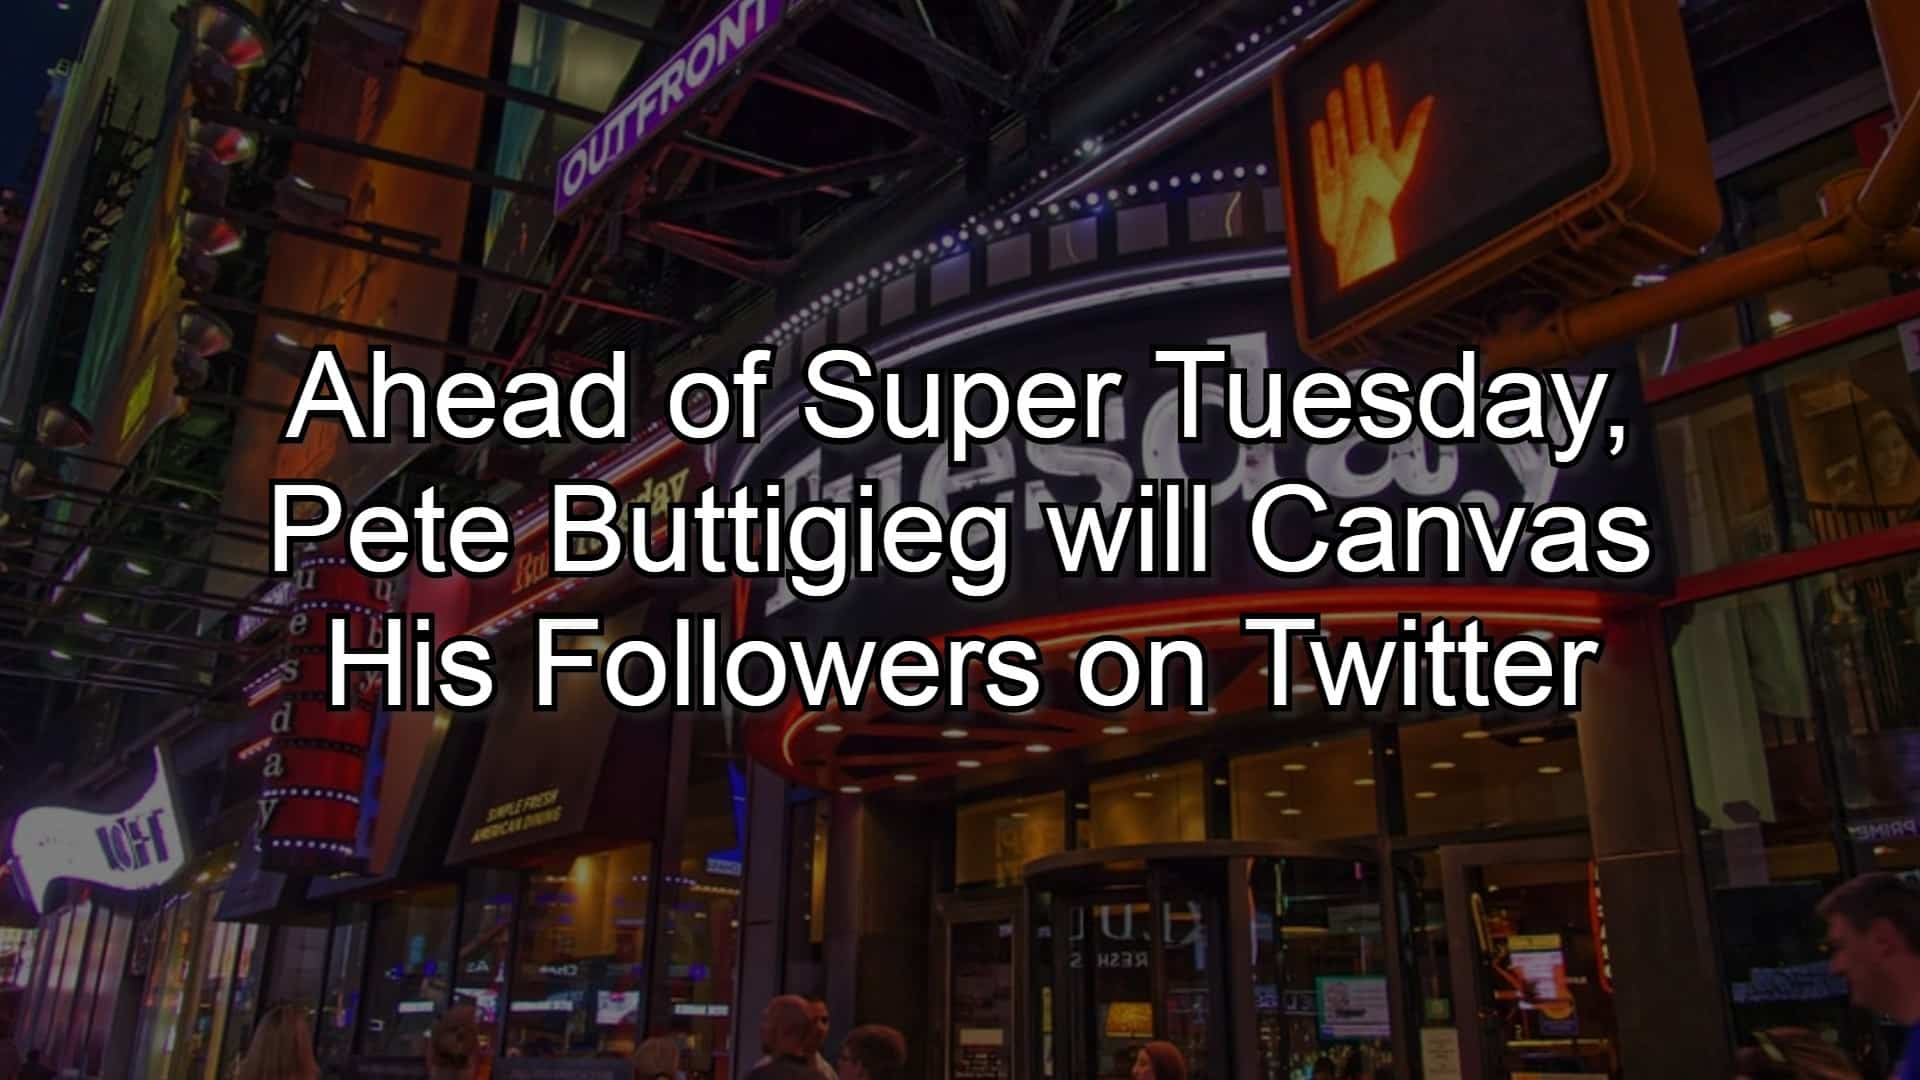 Ahead of Super Tuesday, Pete Buttigieg will Canvas His Followers on Twitter